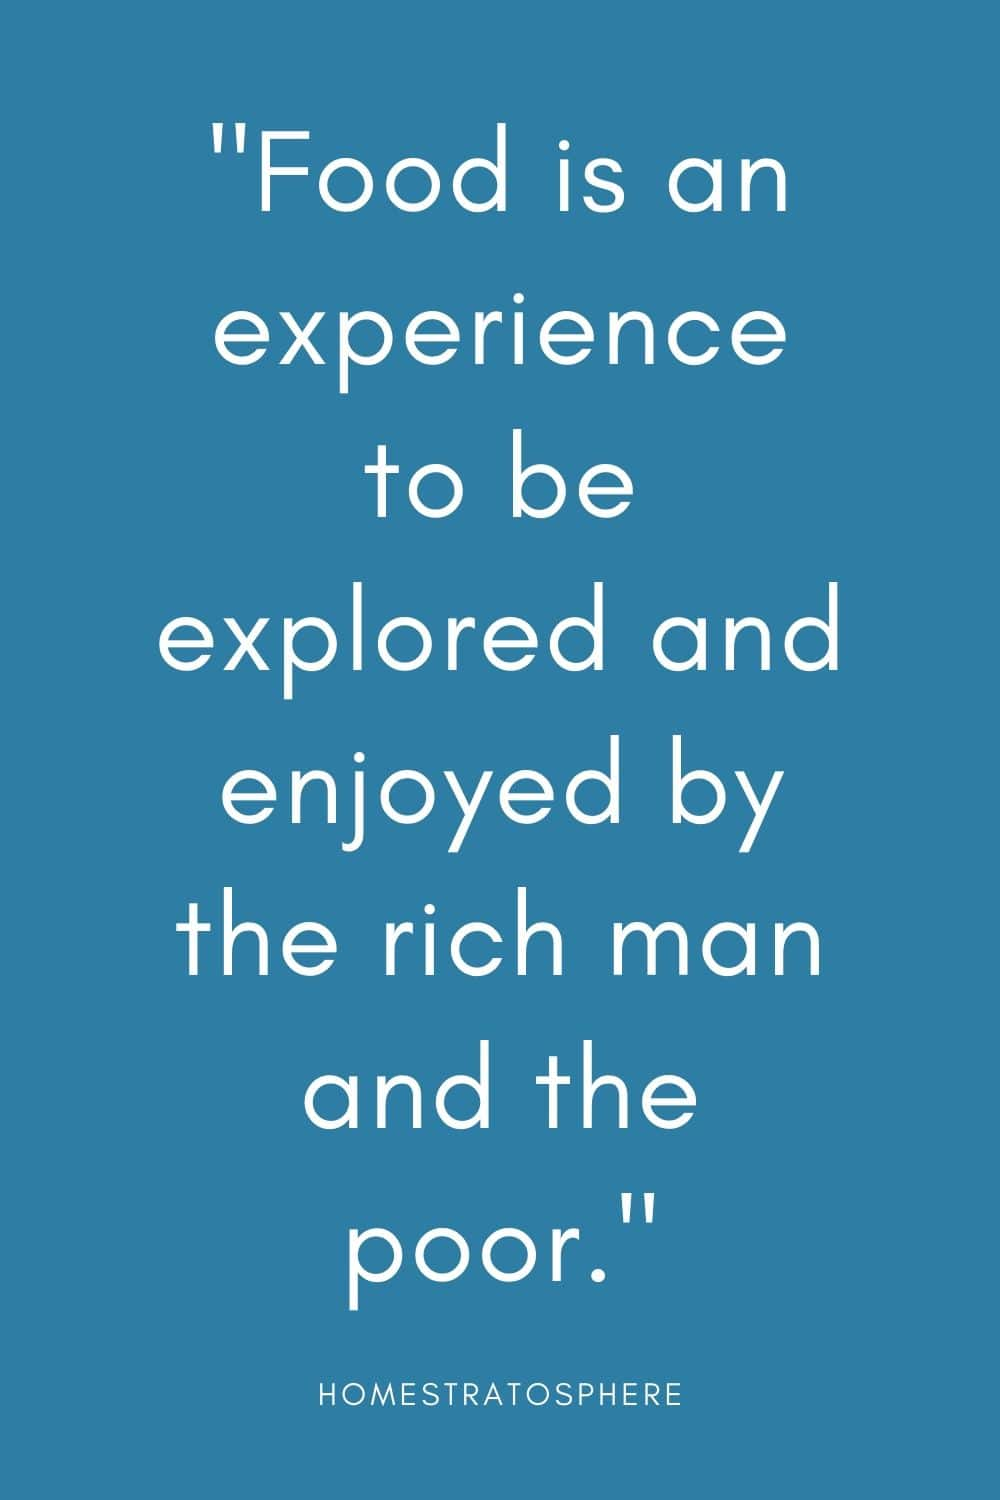 """Food is an experience to be explored and enjoyed by the rich man and the poor."""